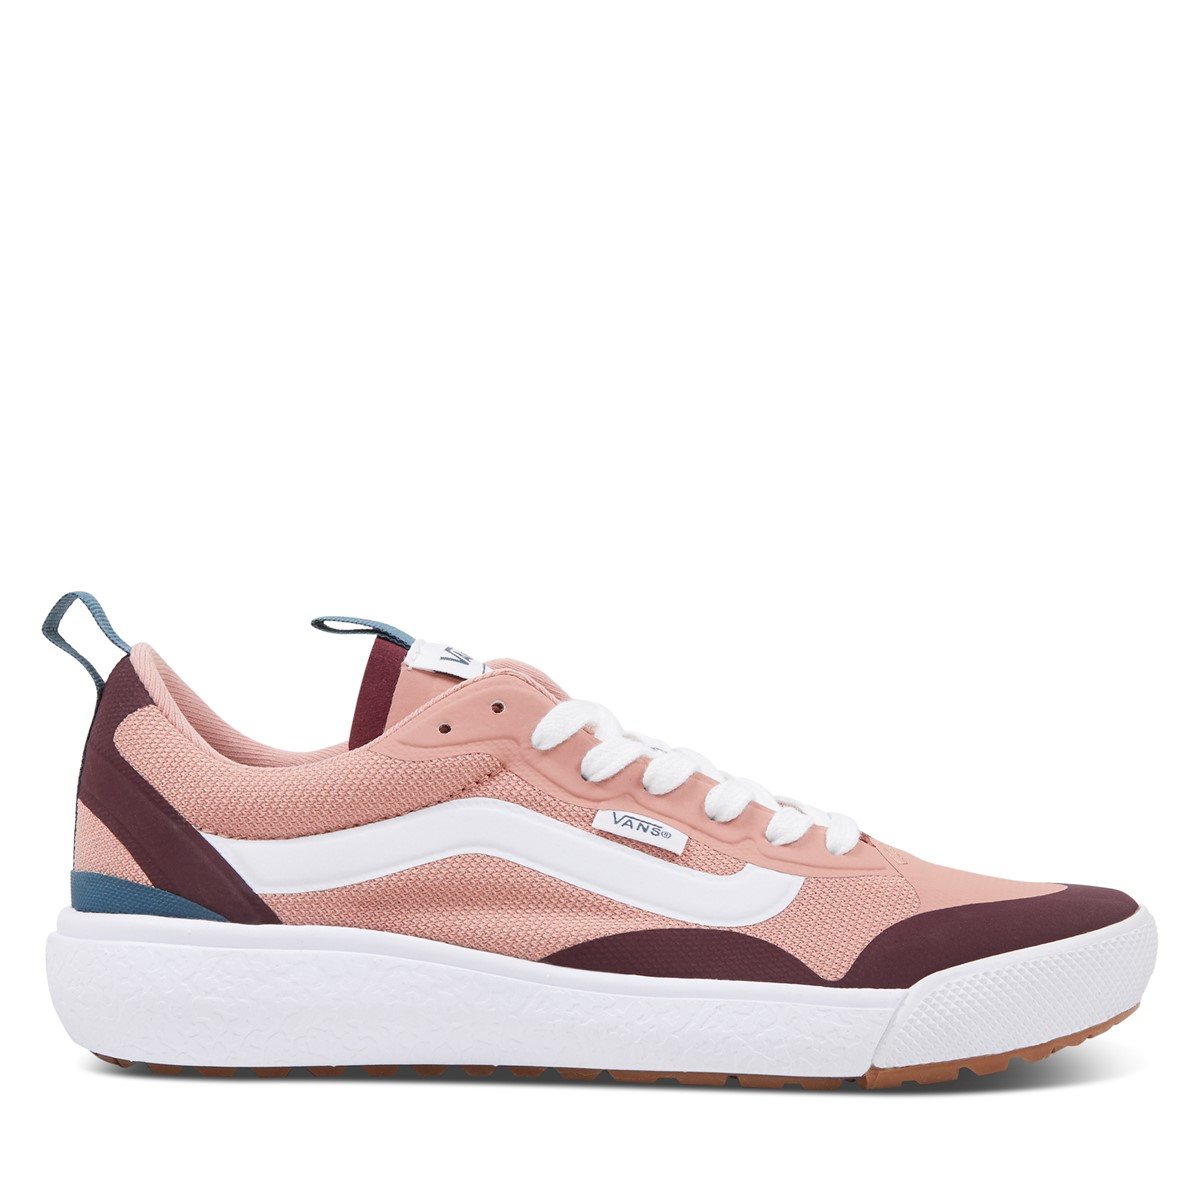 Women's UltraRange Exo Sneakers in Pink